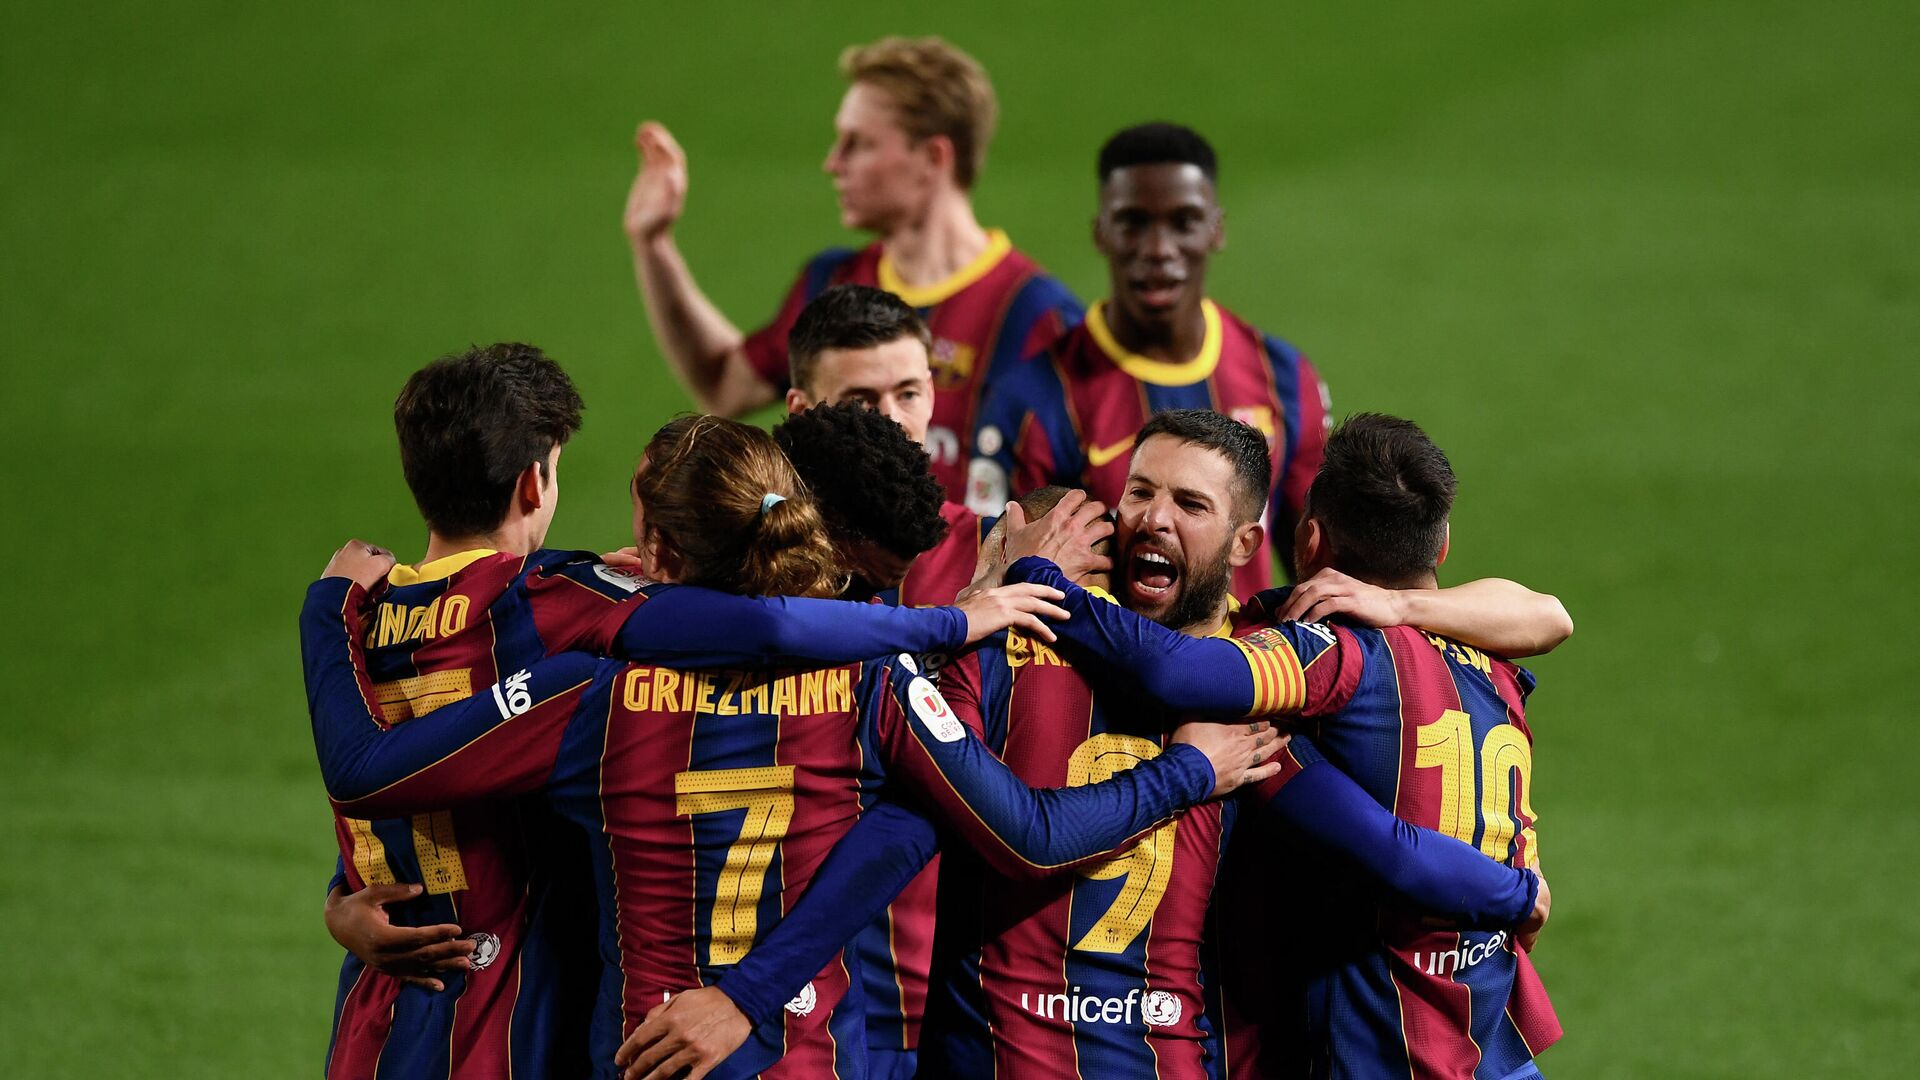 Barcelona players celebrate their third goal scored by Barcelona's Danish forward Martin Braithwaite during Spanish Copa del Rey (King's Cup) semi-final second leg football match between FC Barcelona and Sevilla FC at the Camp Nou stadium in Barcelona on March 3, 2021. (Photo by Josep LAGO / AFP) - РИА Новости, 1920, 04.03.2021